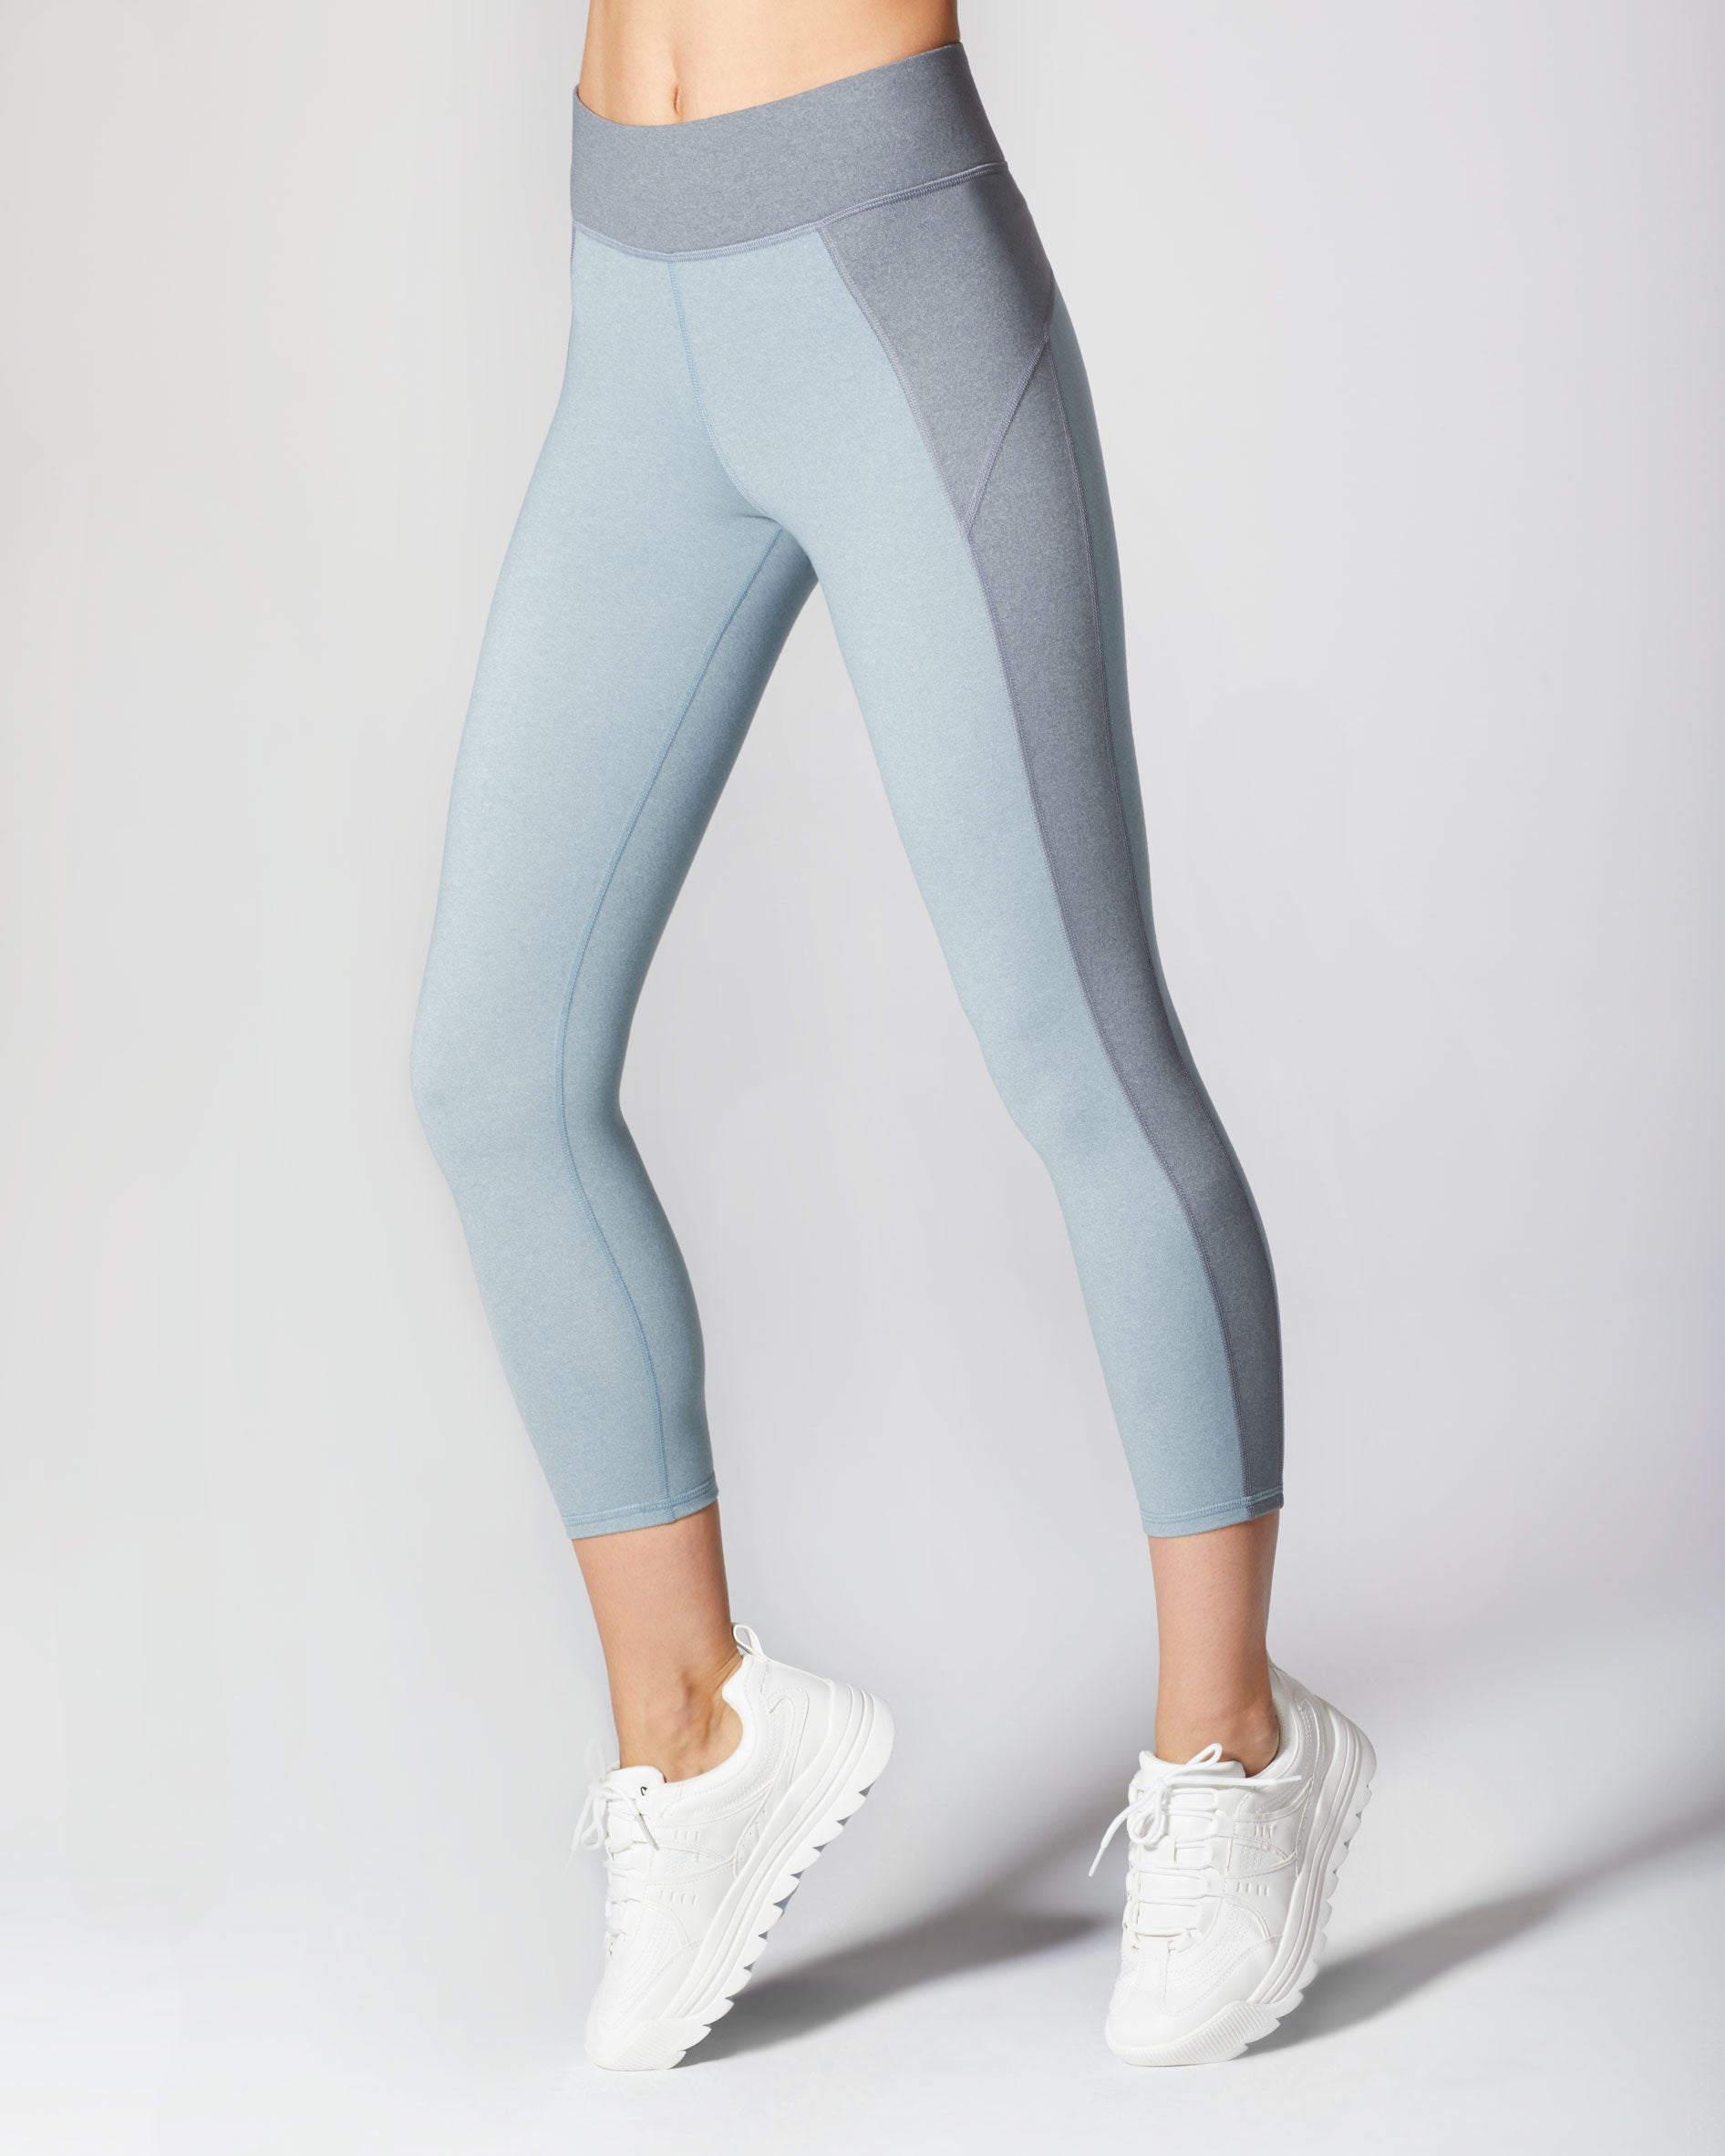 Lotus Crop Legging - Angelite Blue